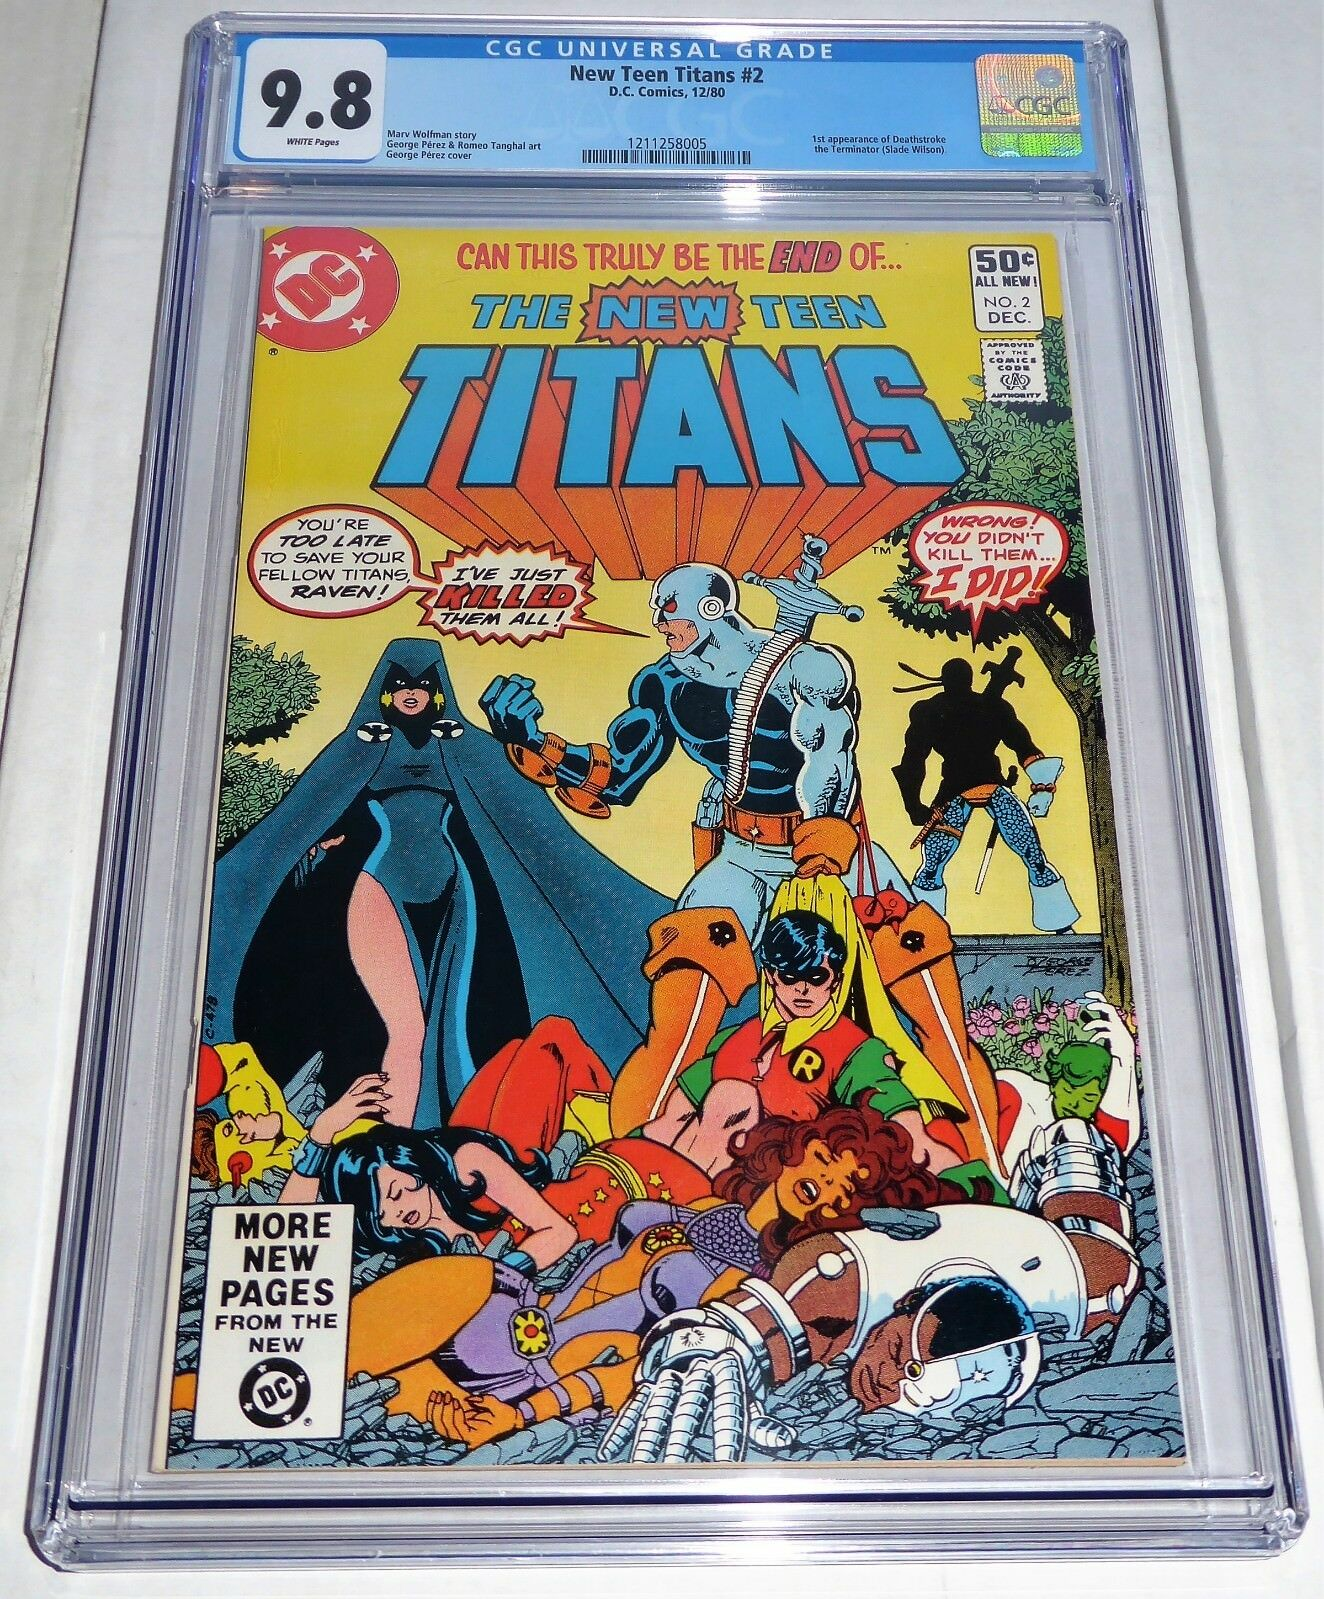 New Teen Titans #2 1st Appearance of Deathstrock The Terminator Slade Wilson CGC